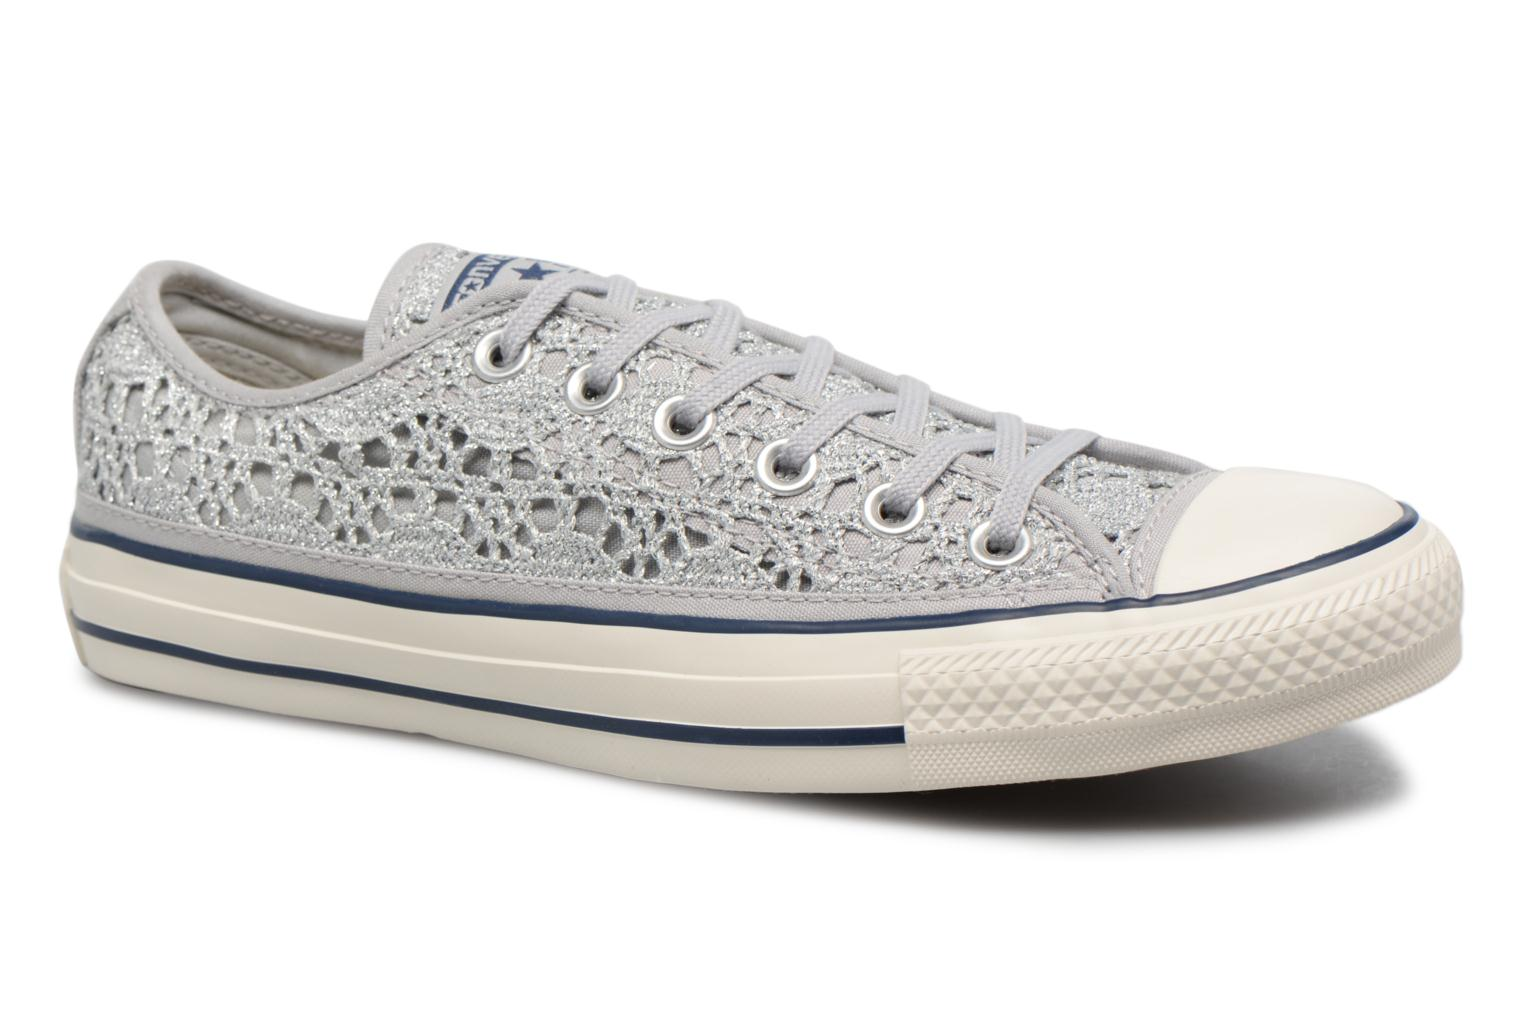 CTAS OX PURE Pure Silver/White/Navy